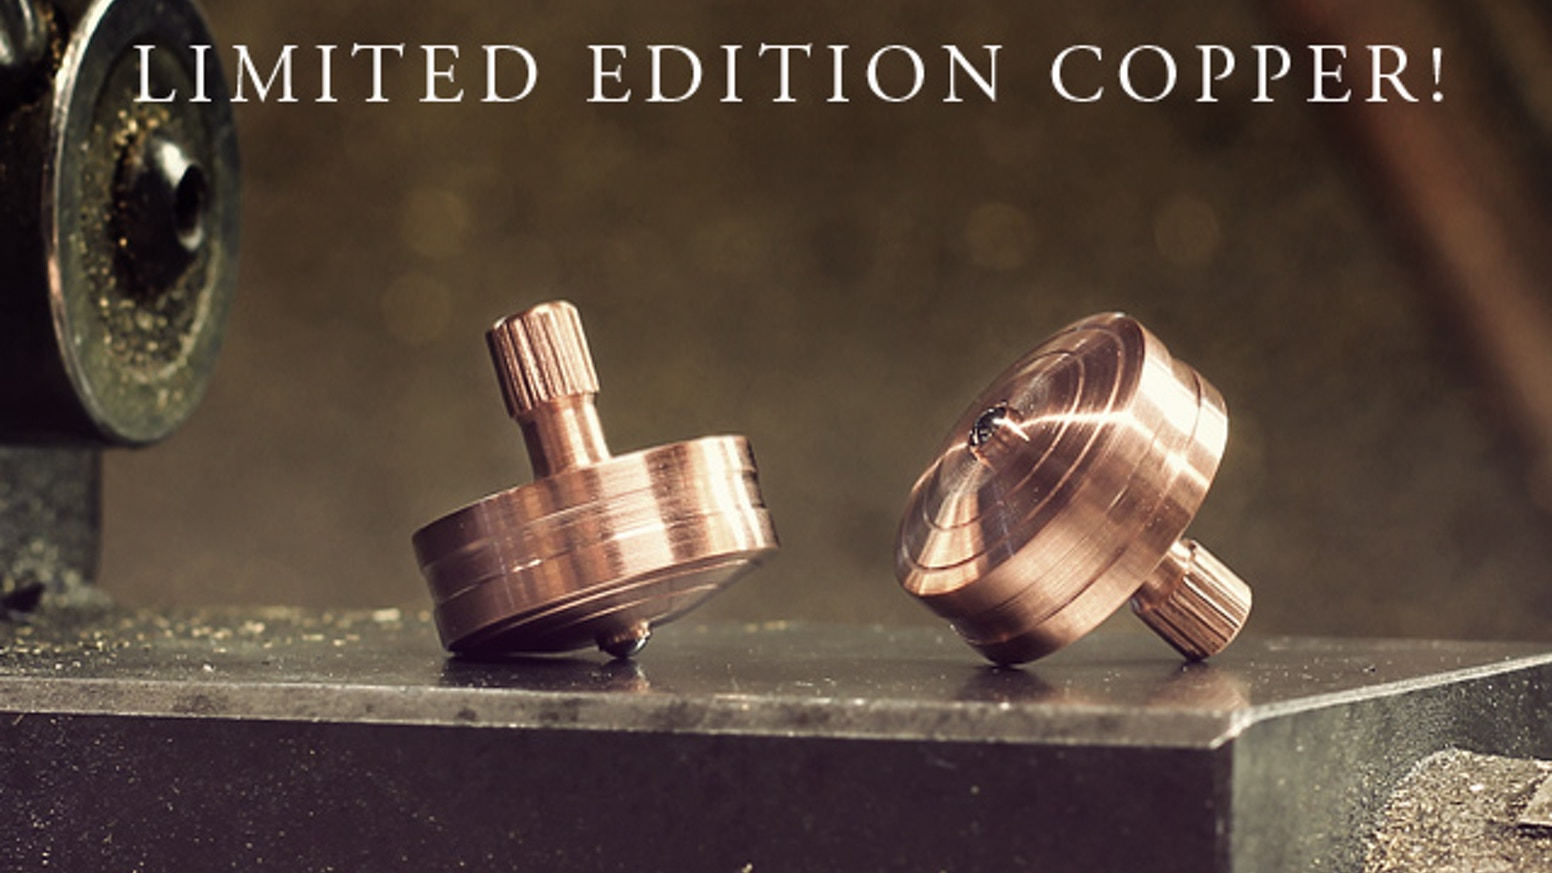 Manually machined solid brass & stainless steel spinning tops.  The not so obvious addition to your every day carry.